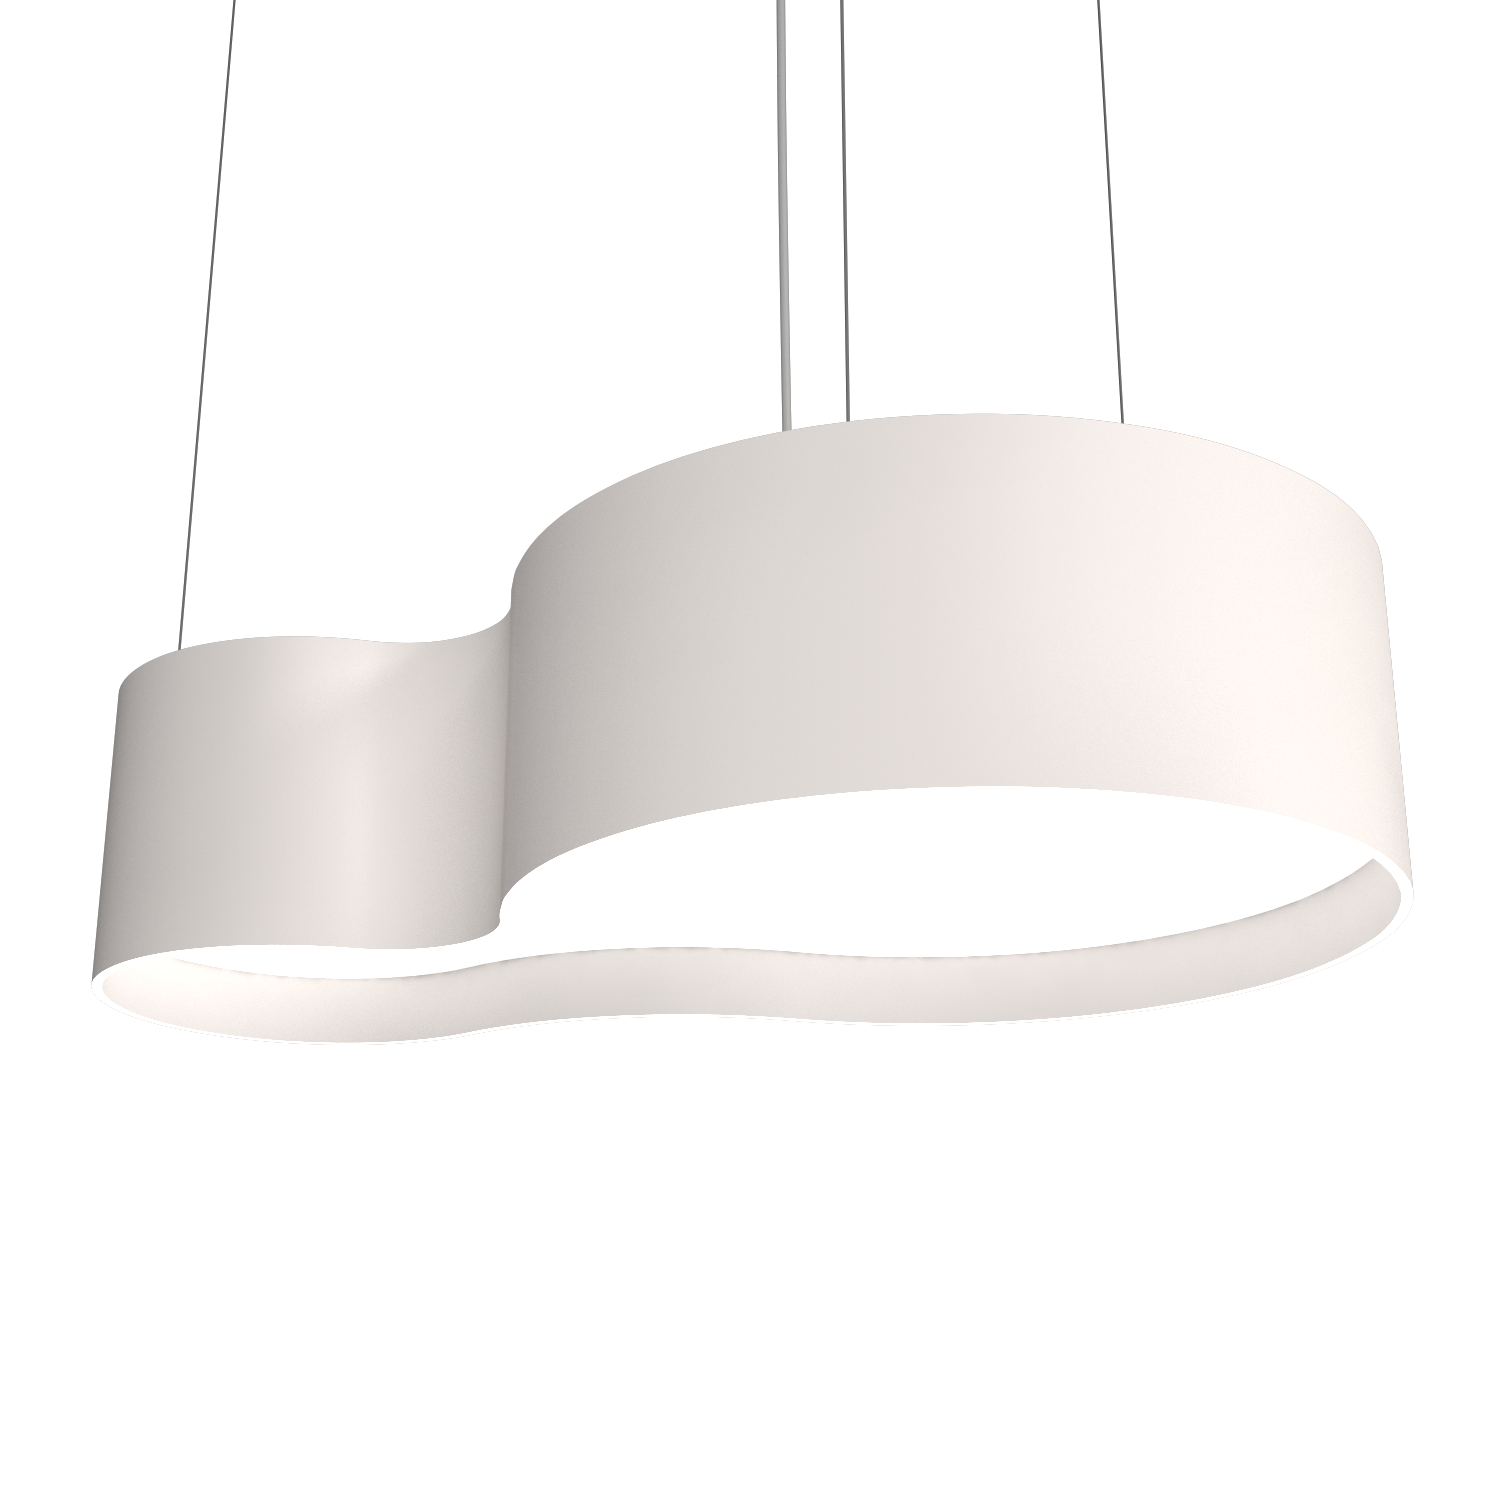 Pendant Lamp Accord Orgânico 285 - Orgânica Line Accord Lighting | 25. Iredescent White